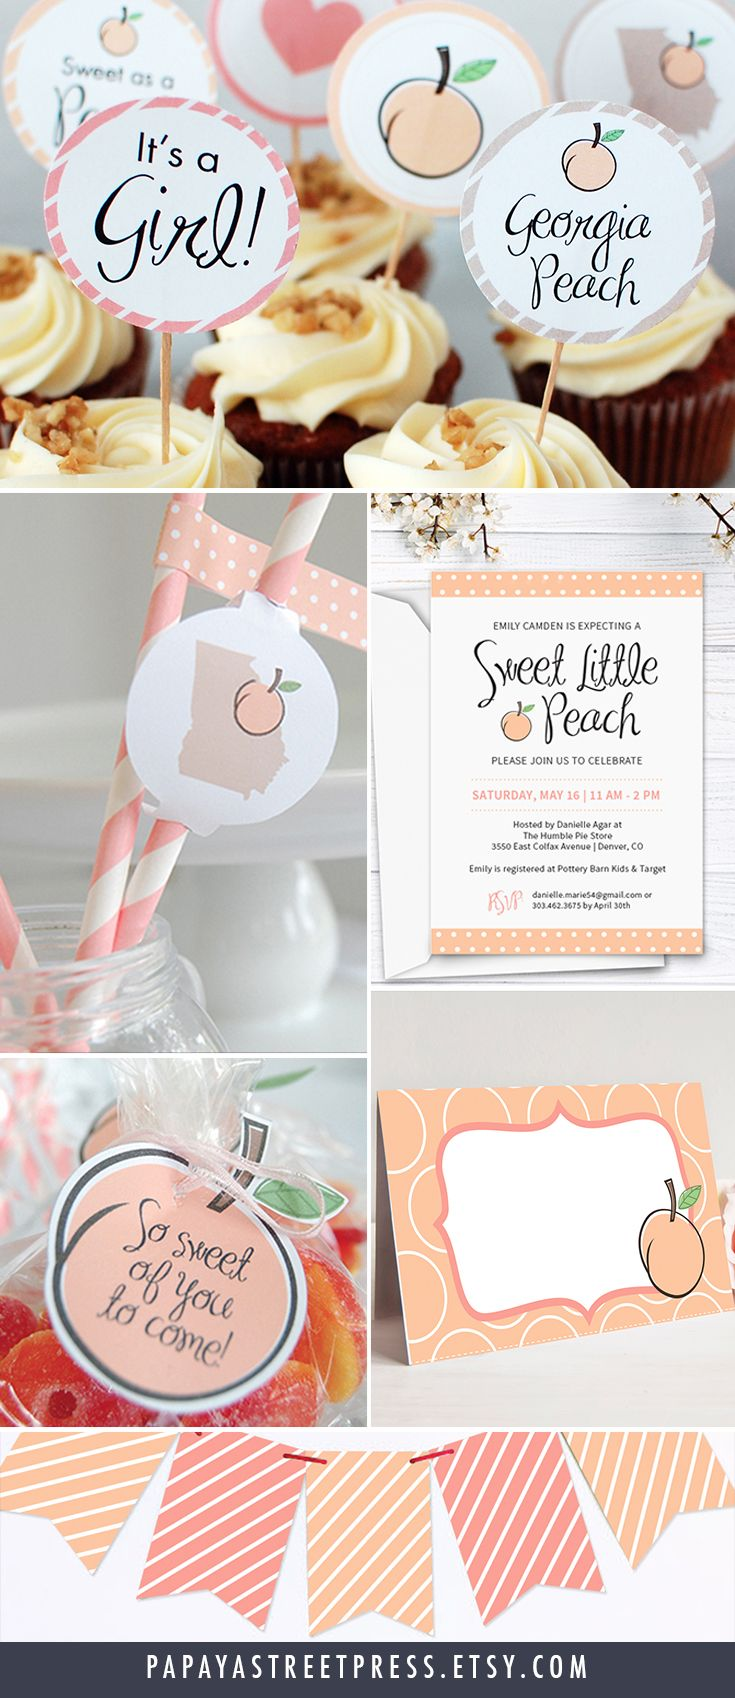 Free printable santa wish list coloring page tickled peach studio - Host A Memorable Georgia Peach Baby Shower With This Adorable Sweet As A Peach Set